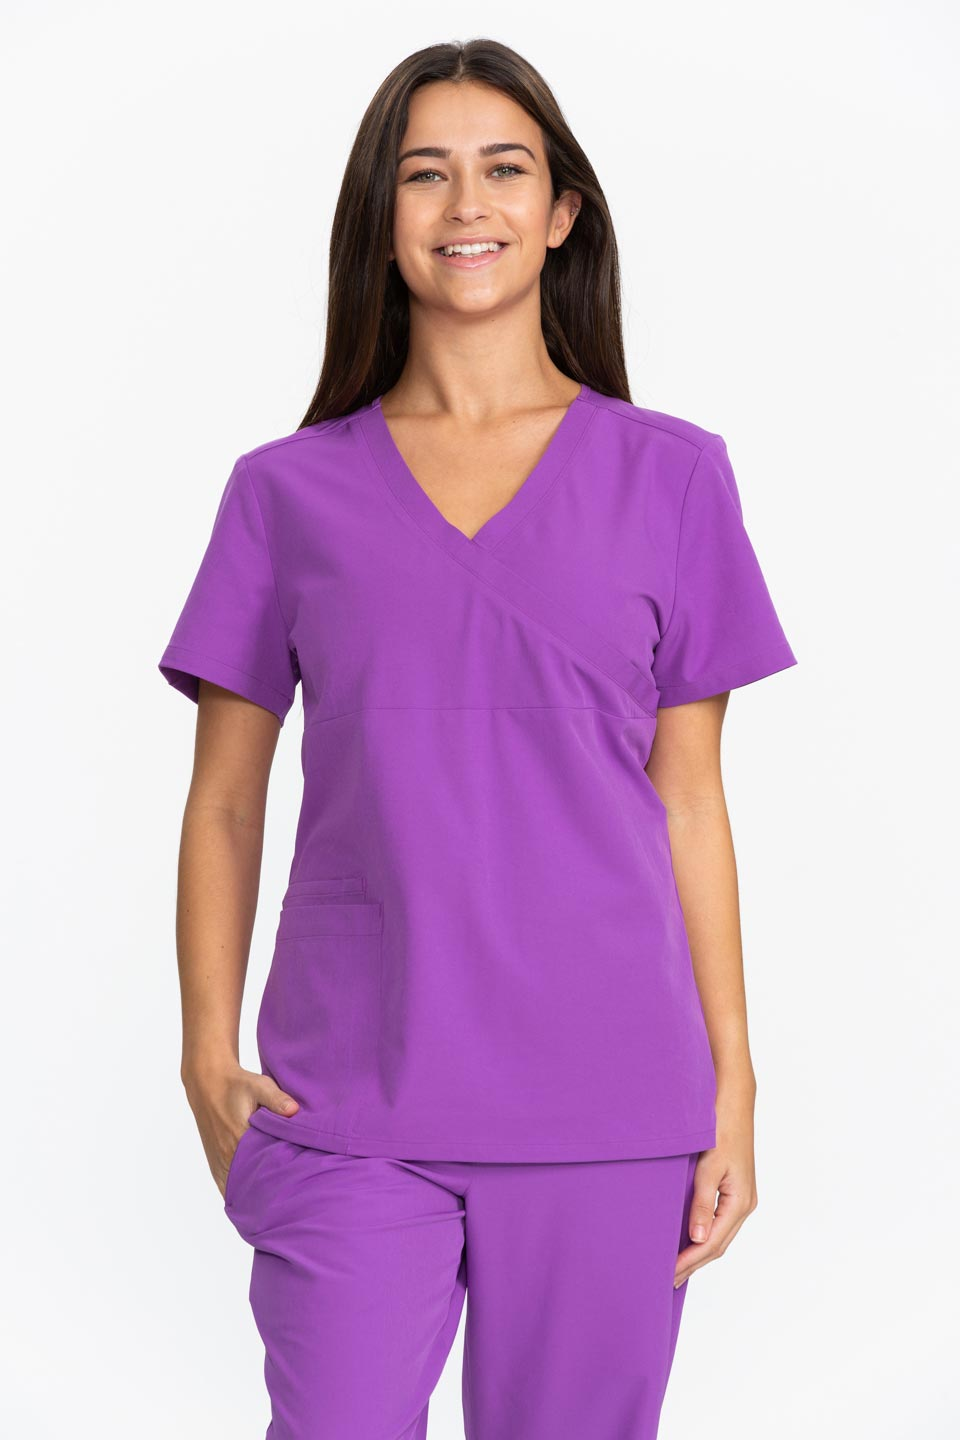 Kalea - Womens Jubilee Scrub Top - Purple